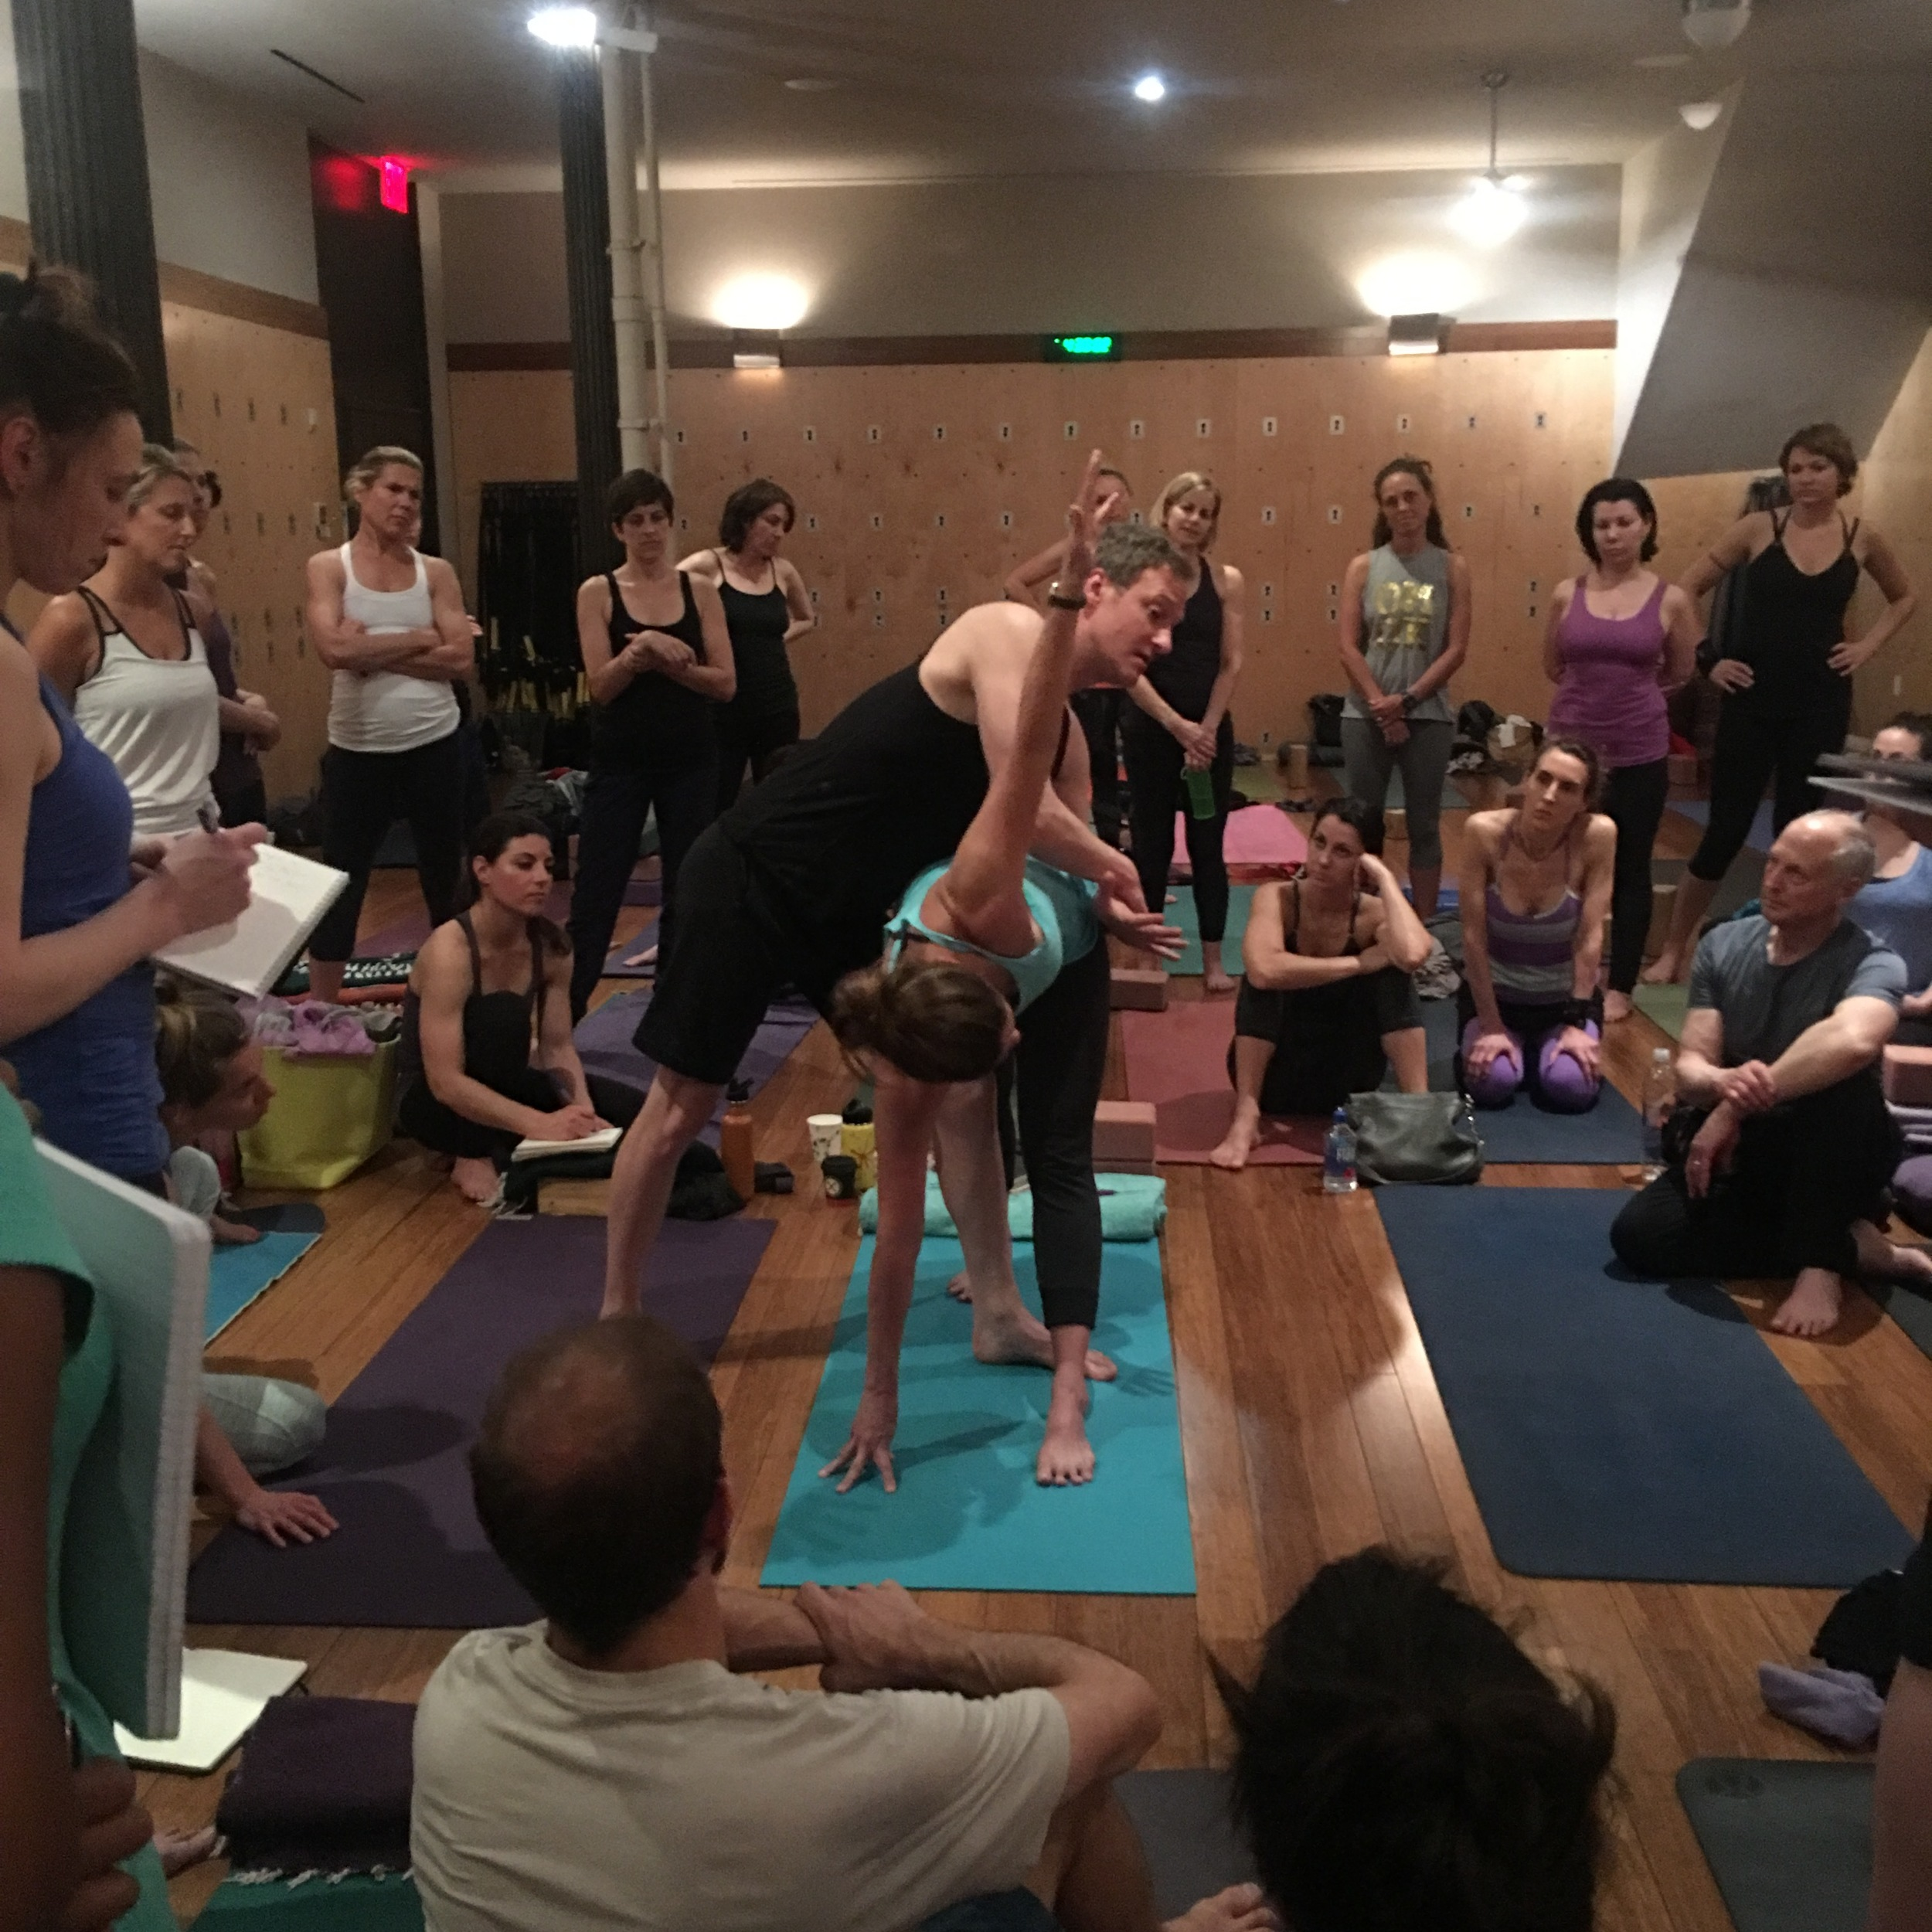 Jason Crandell  demonstrating an adjustment on revolve triangle pose, during his 3 day retreat in NYC.